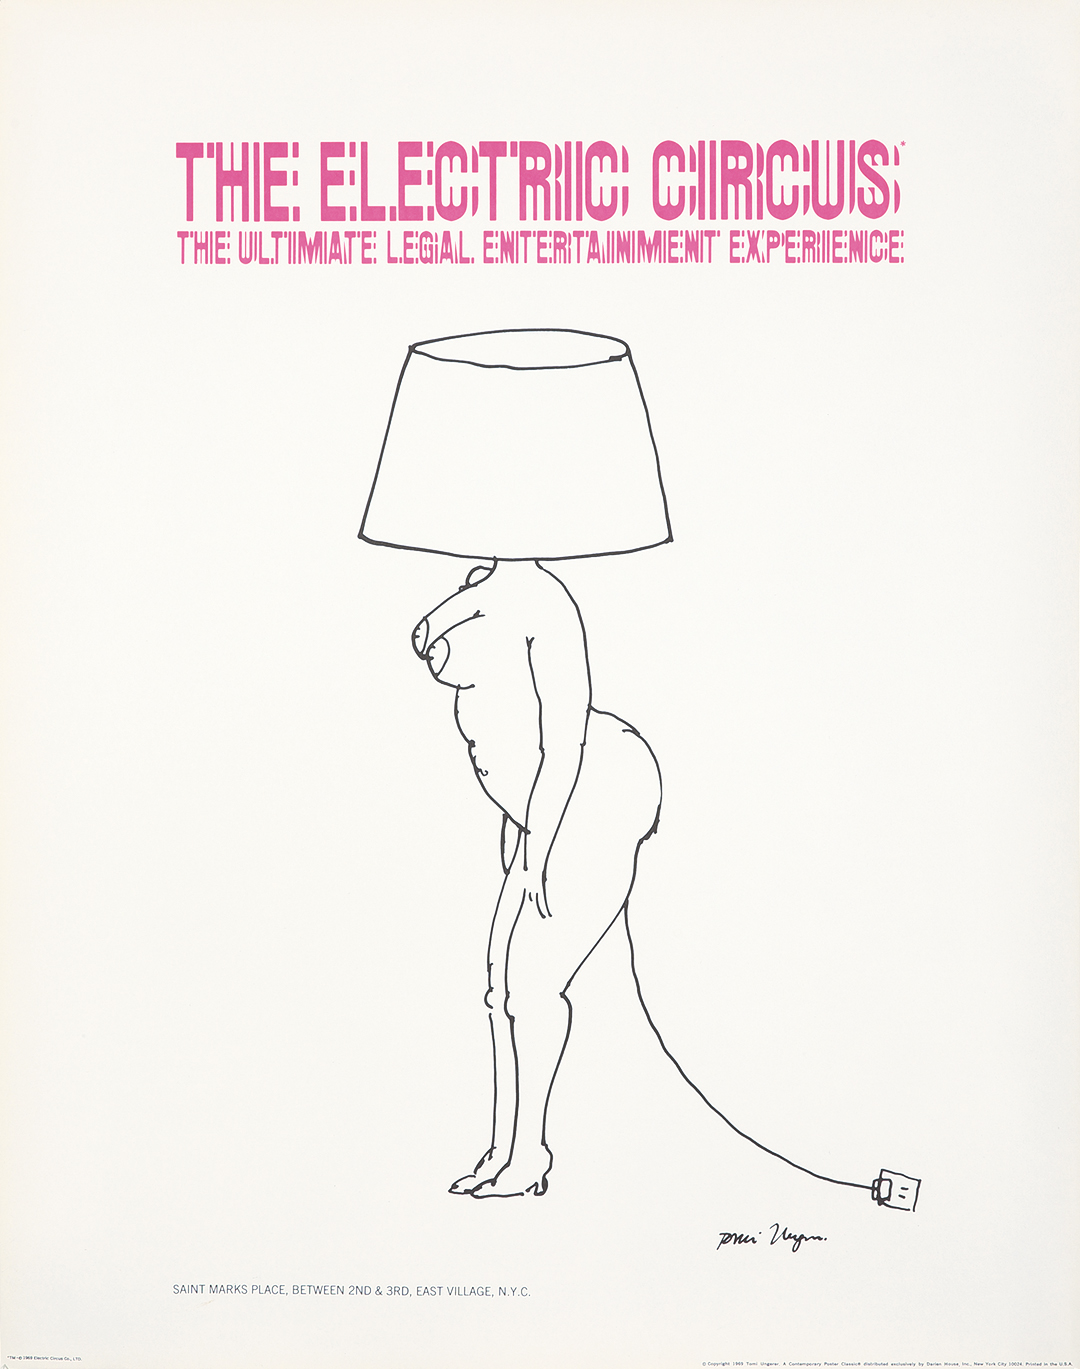 The Electric Circus. 1969.